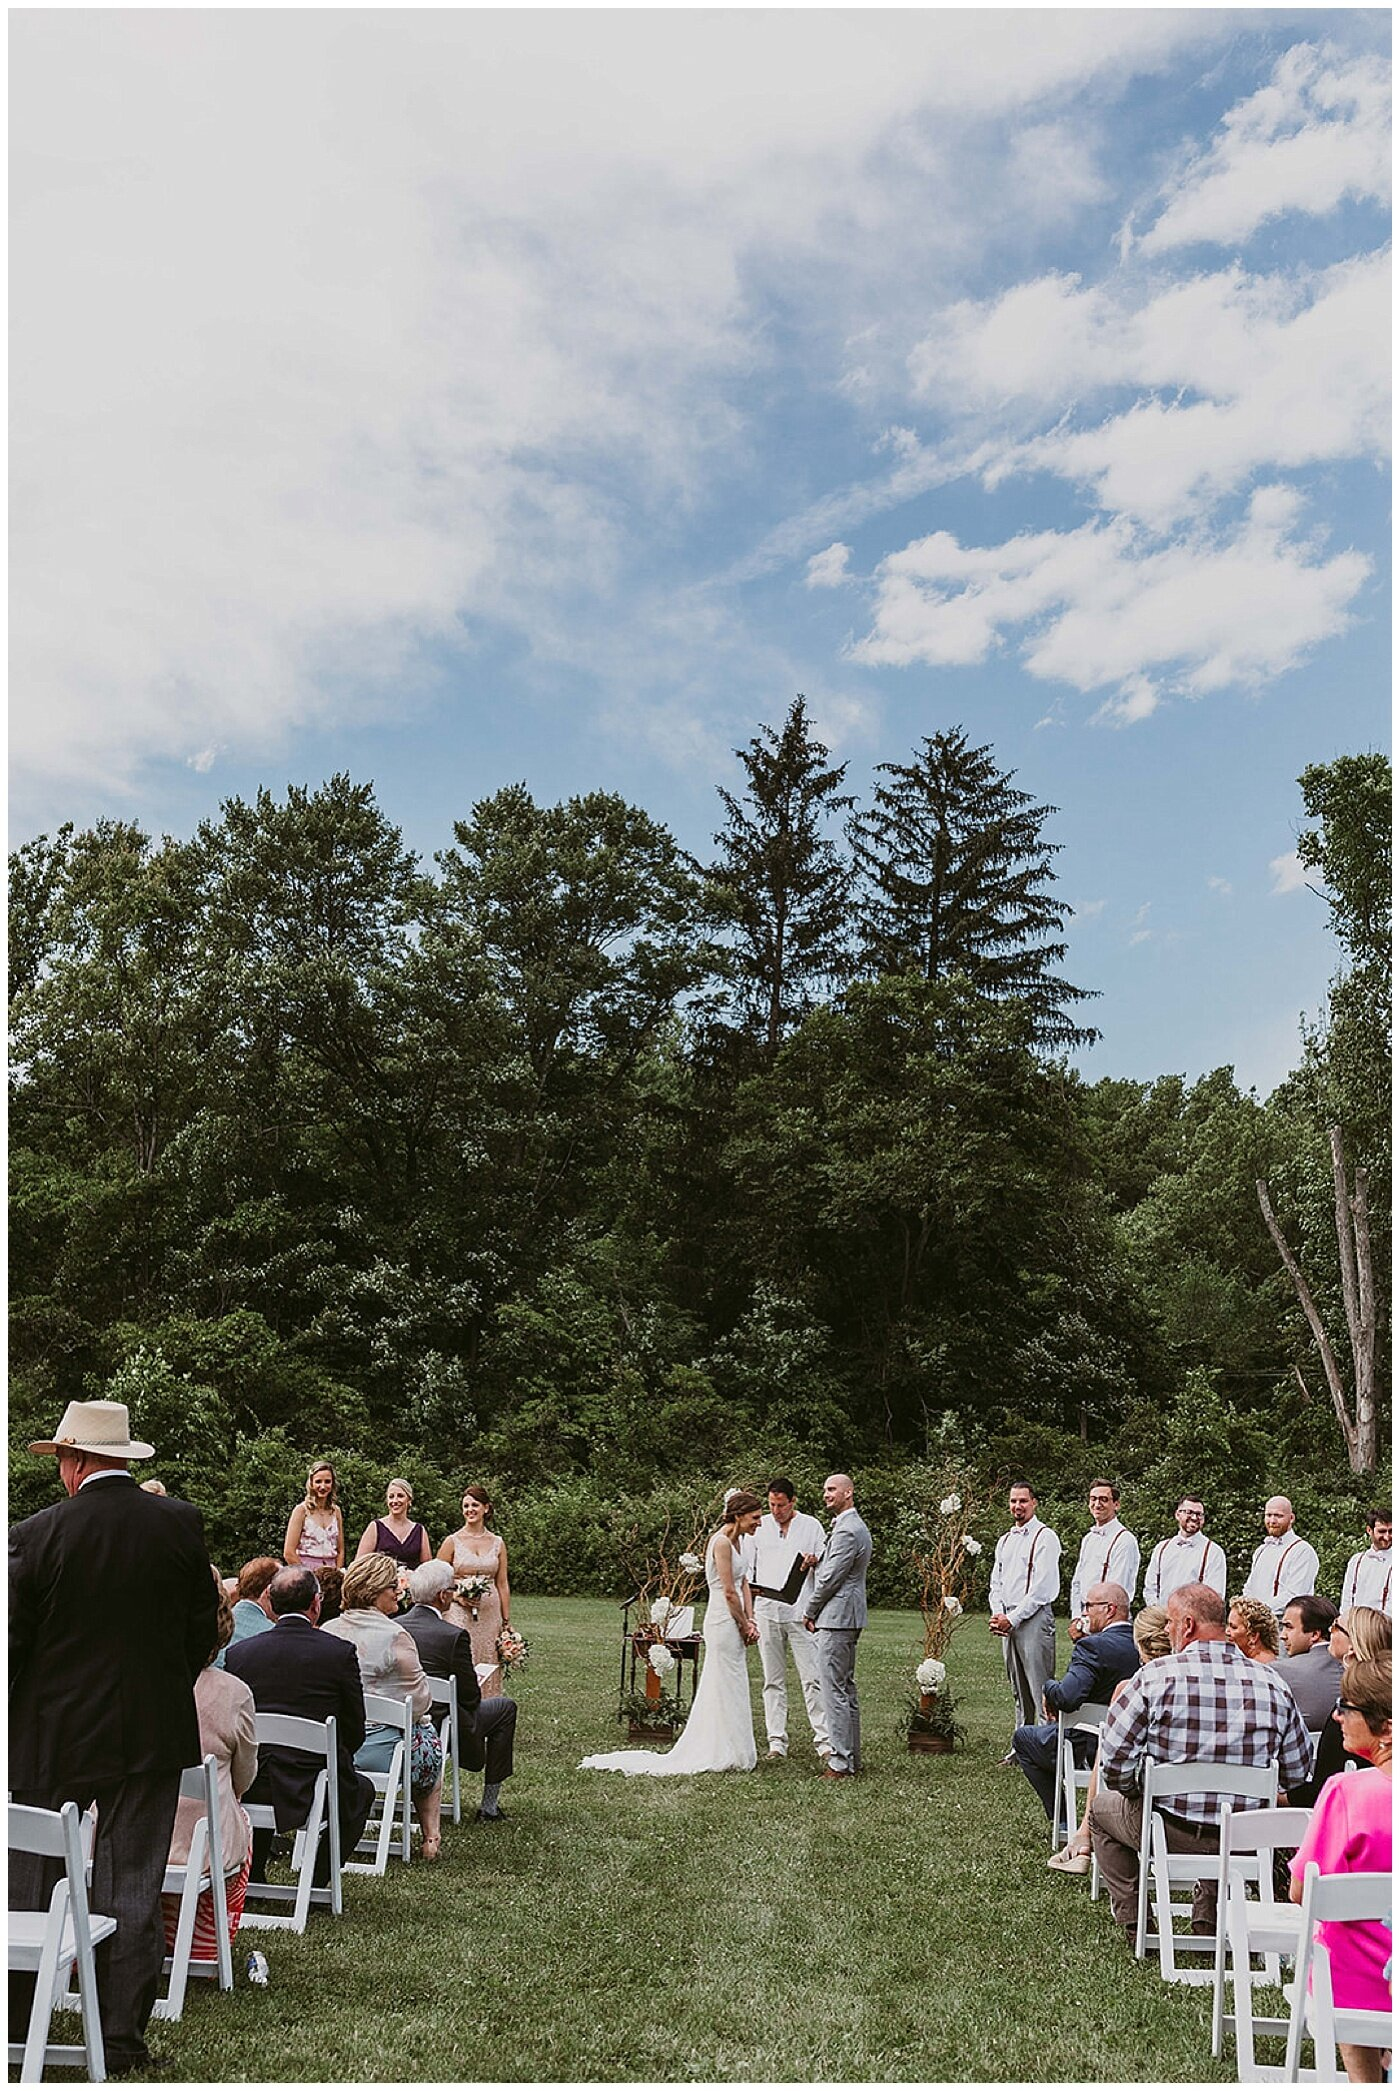 Matt+Katie_WEDDING_MJPHOTO2019-459.jpg